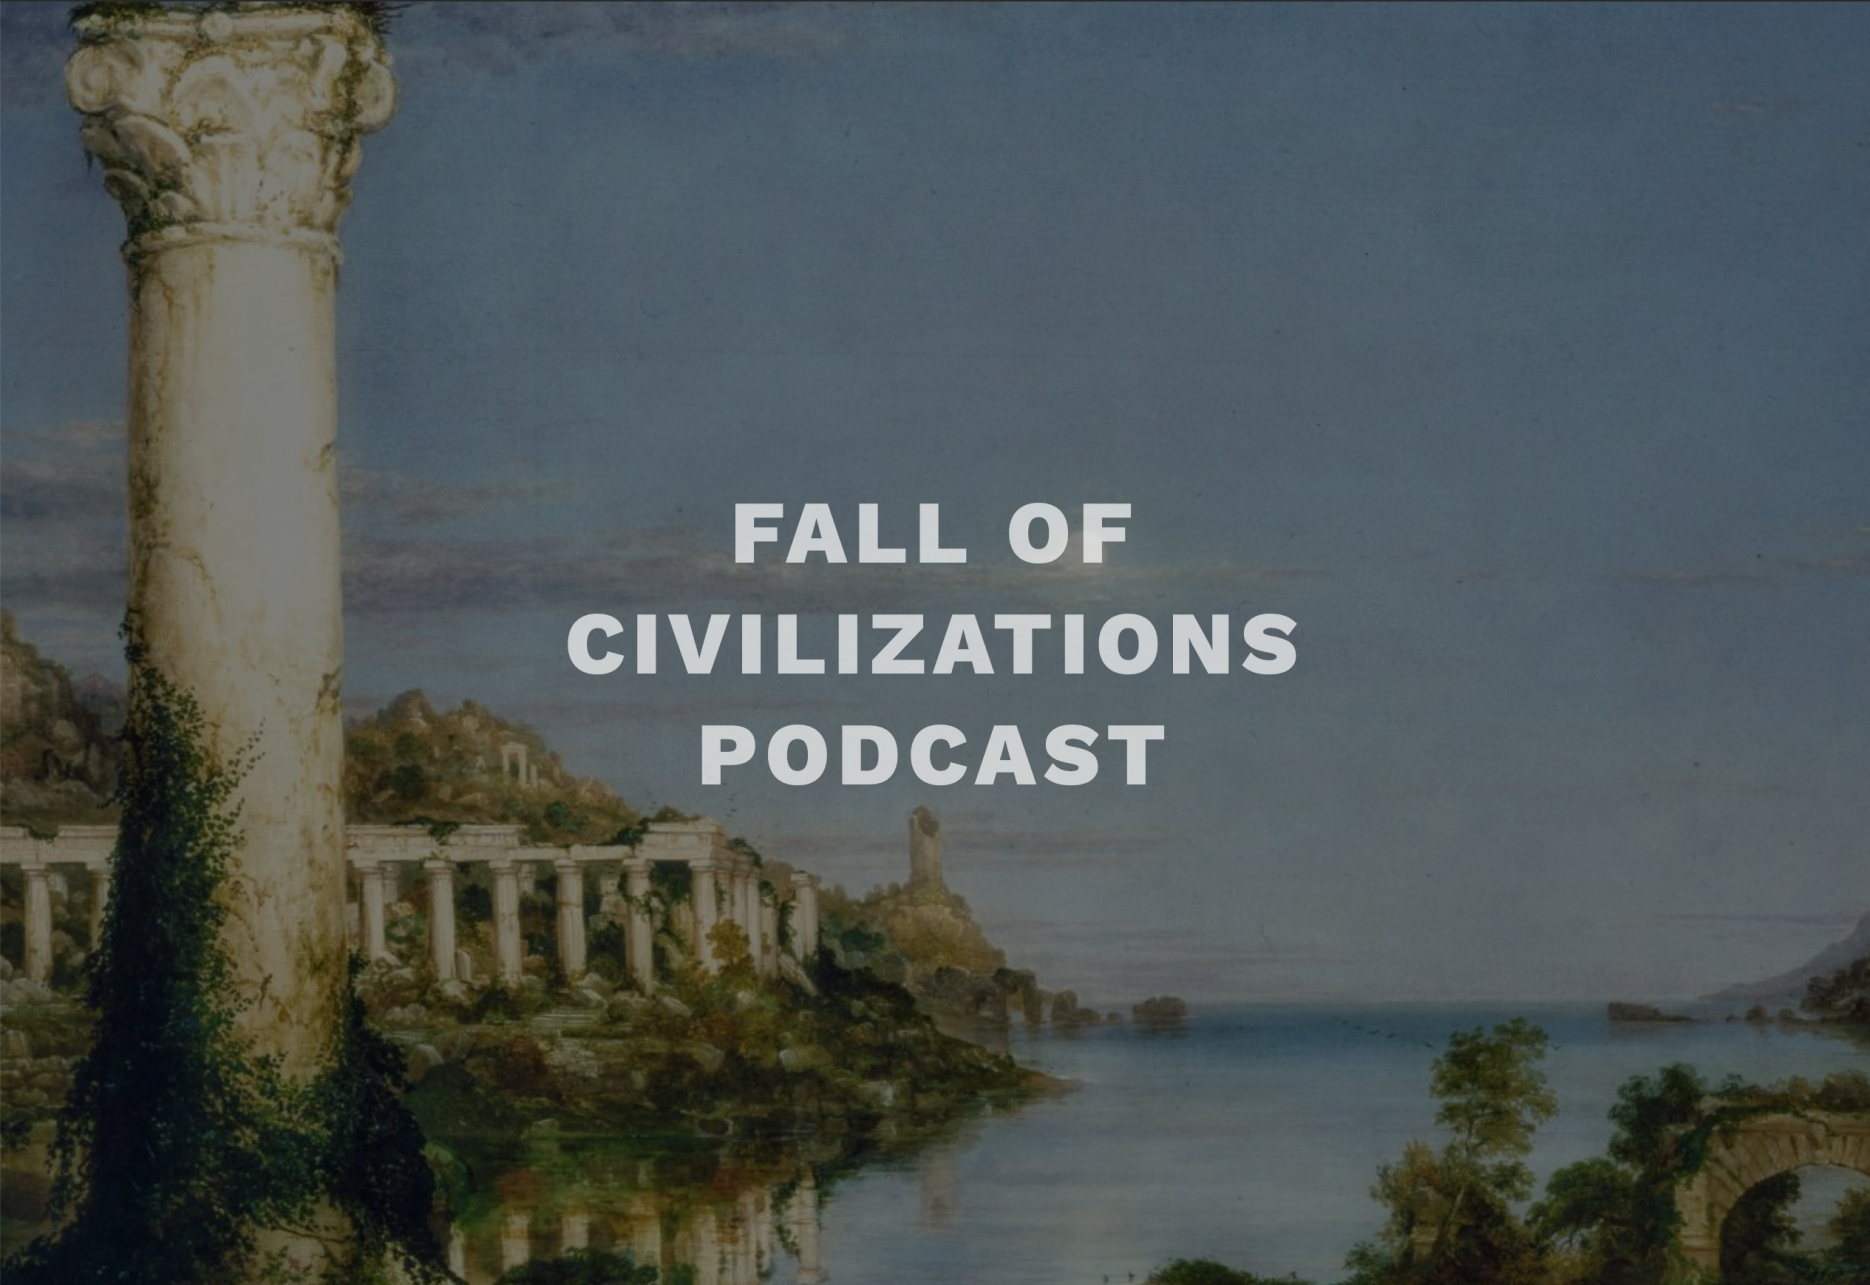 Podcast-Empfehlung:  Fall of Civilizations Podcast by Paul Cooper